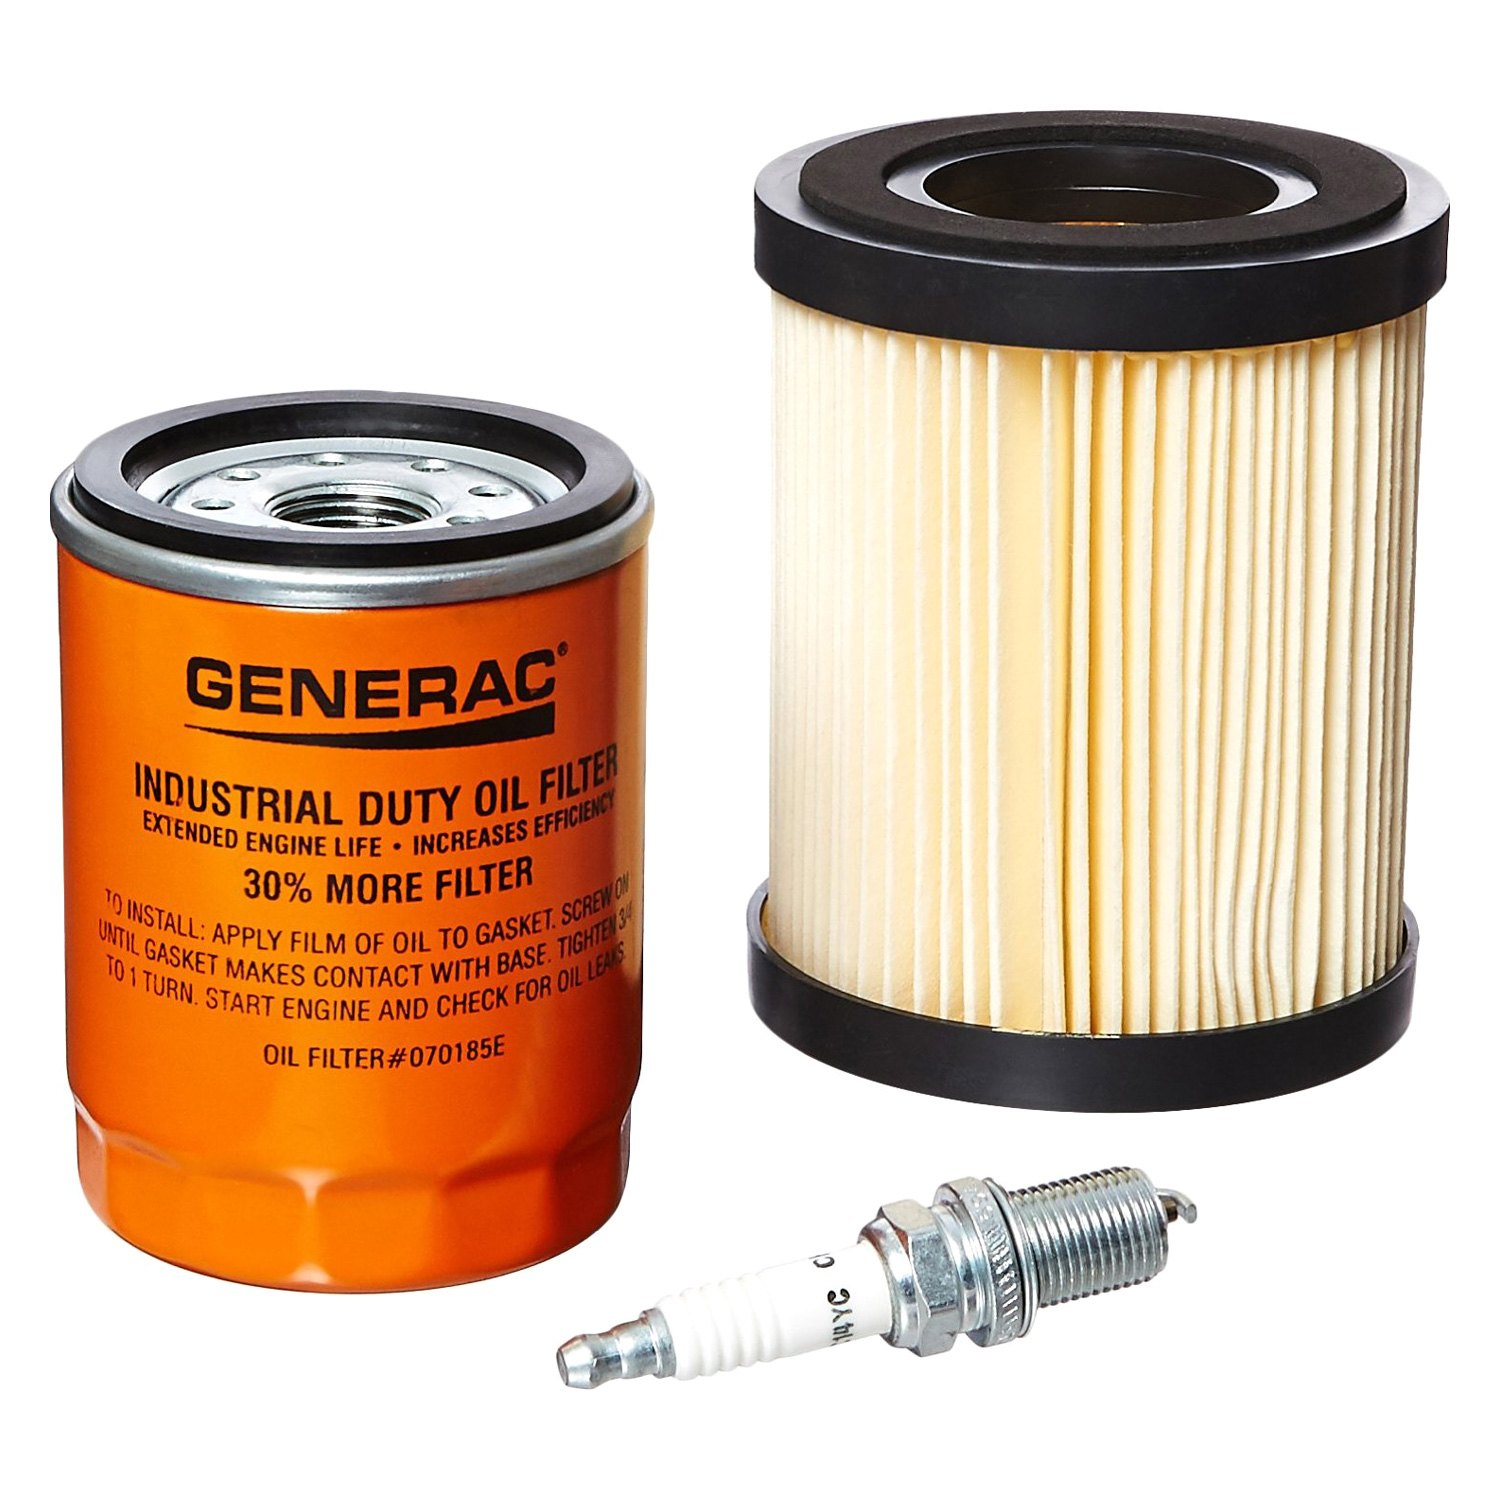 Generac 5662 scheduled maintenance kit for 8kw and for Who makes generac motors